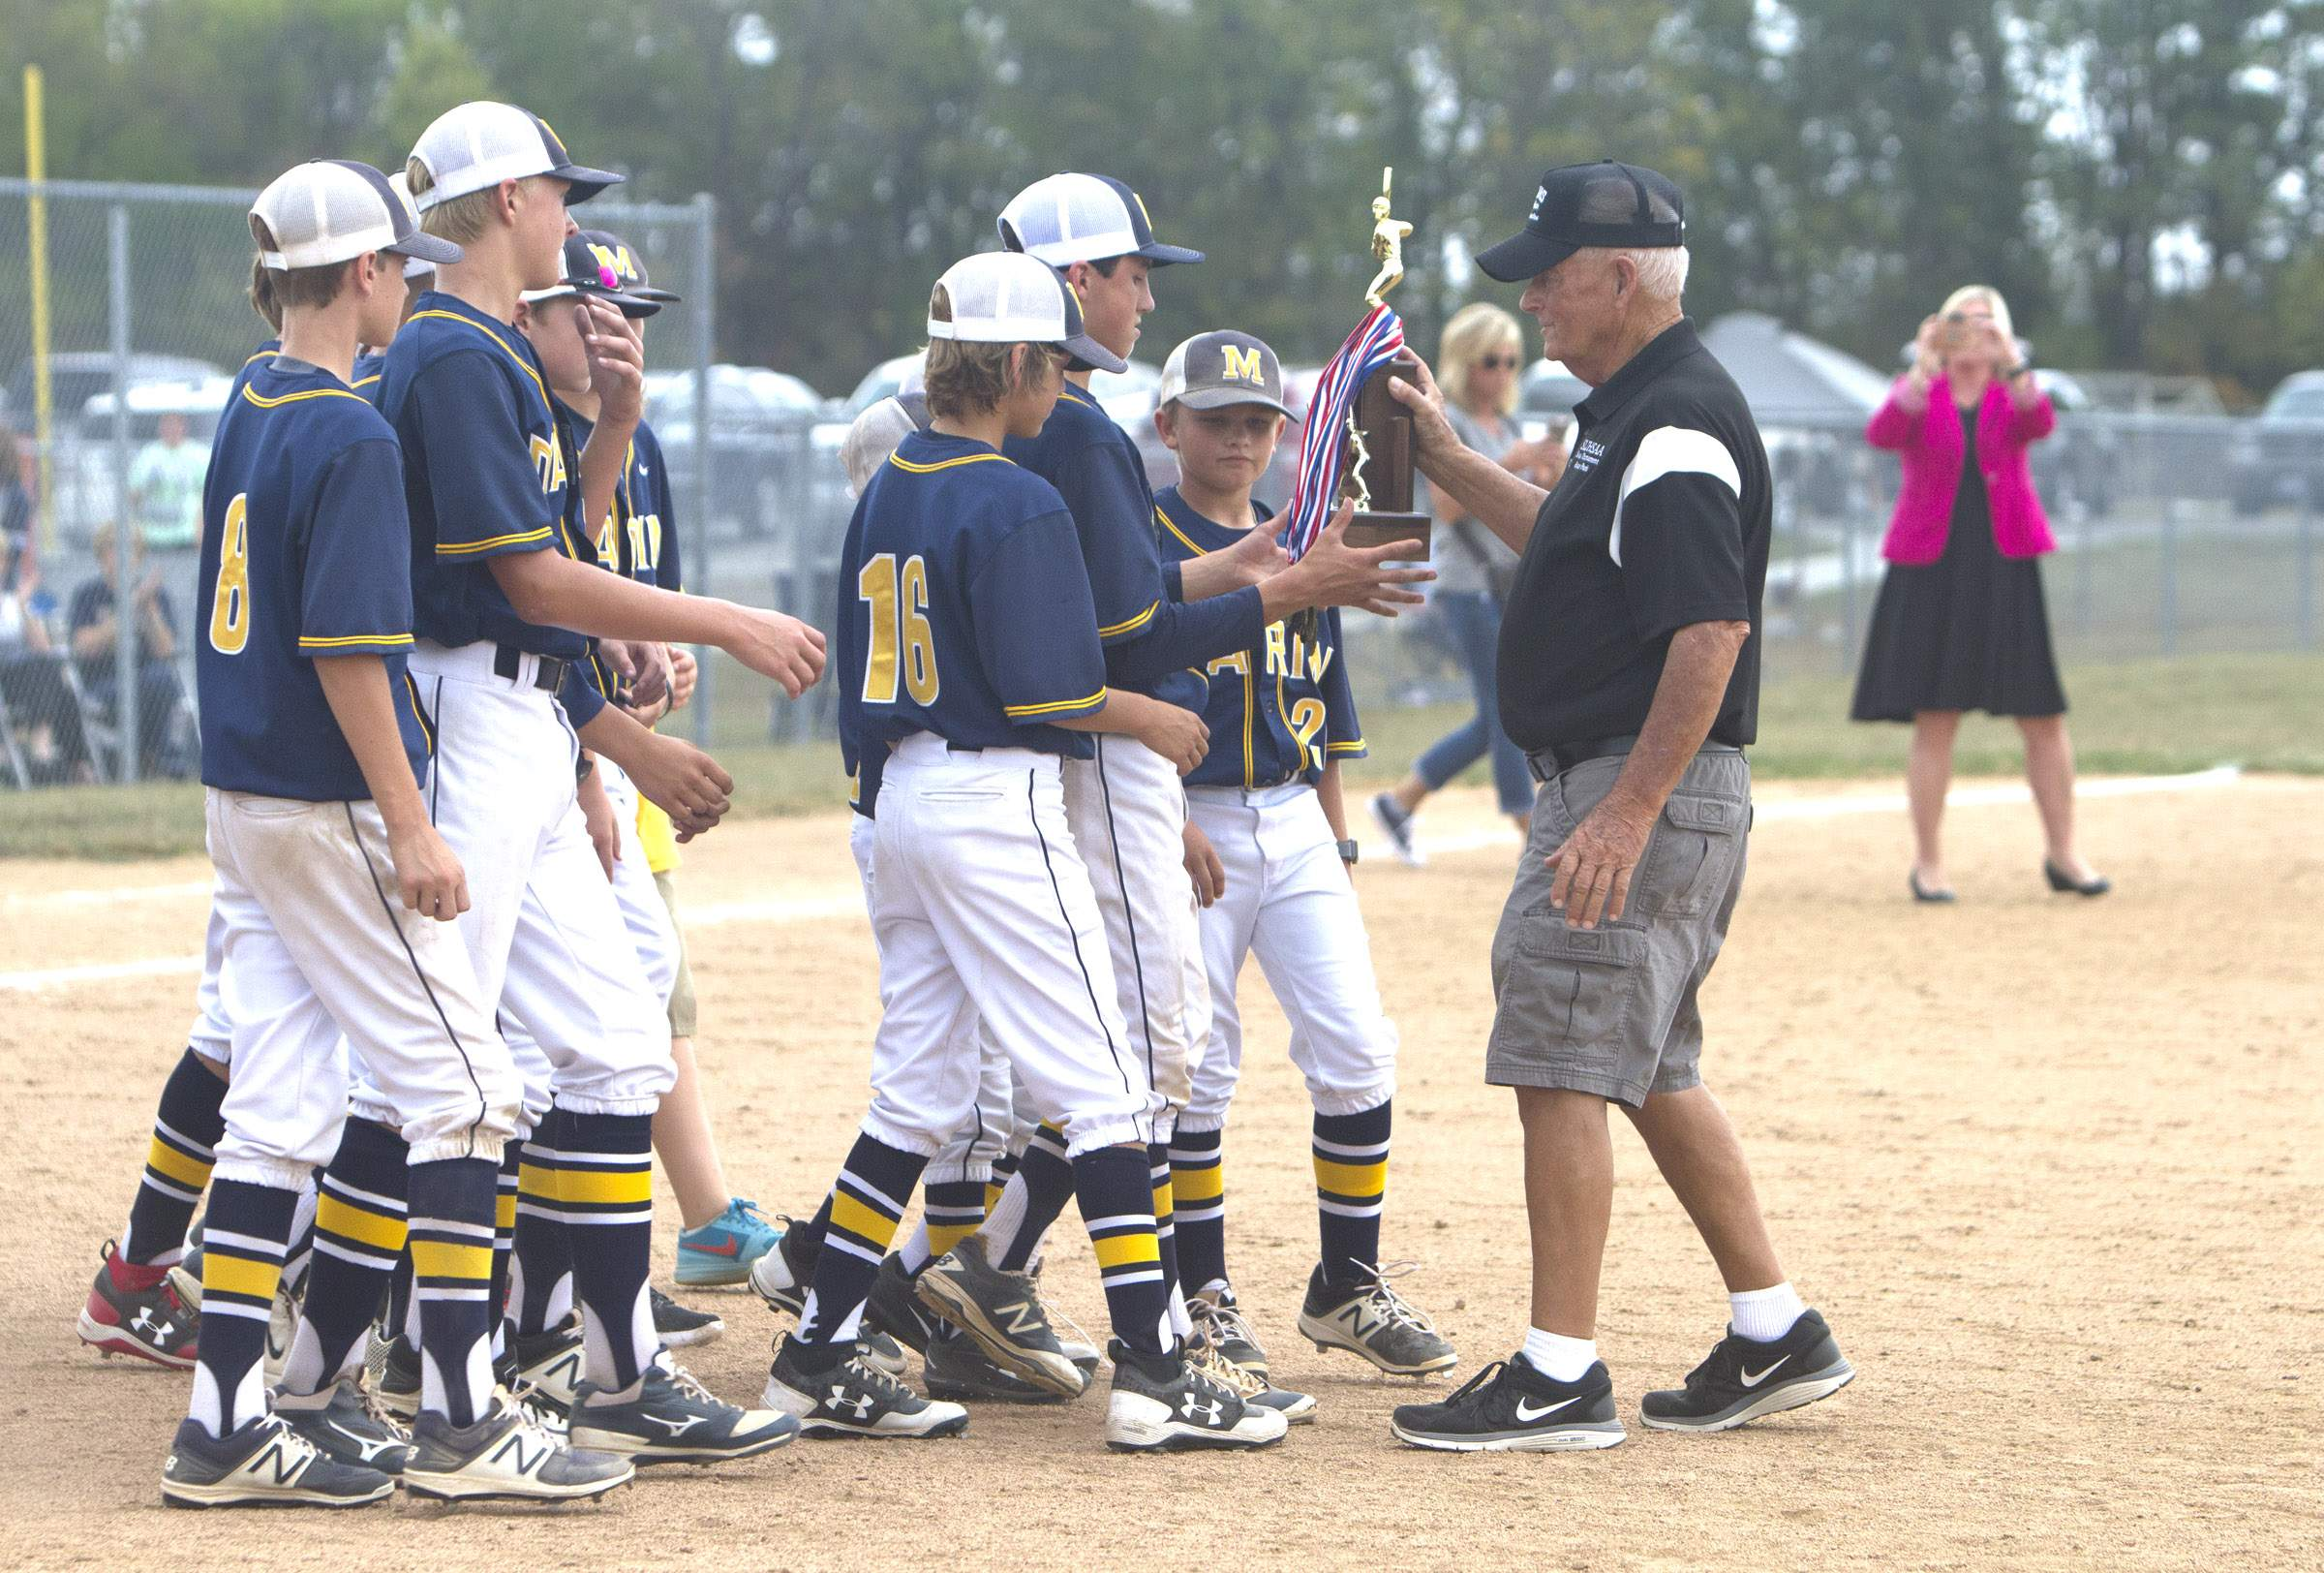 Marion's players receive the trophy.